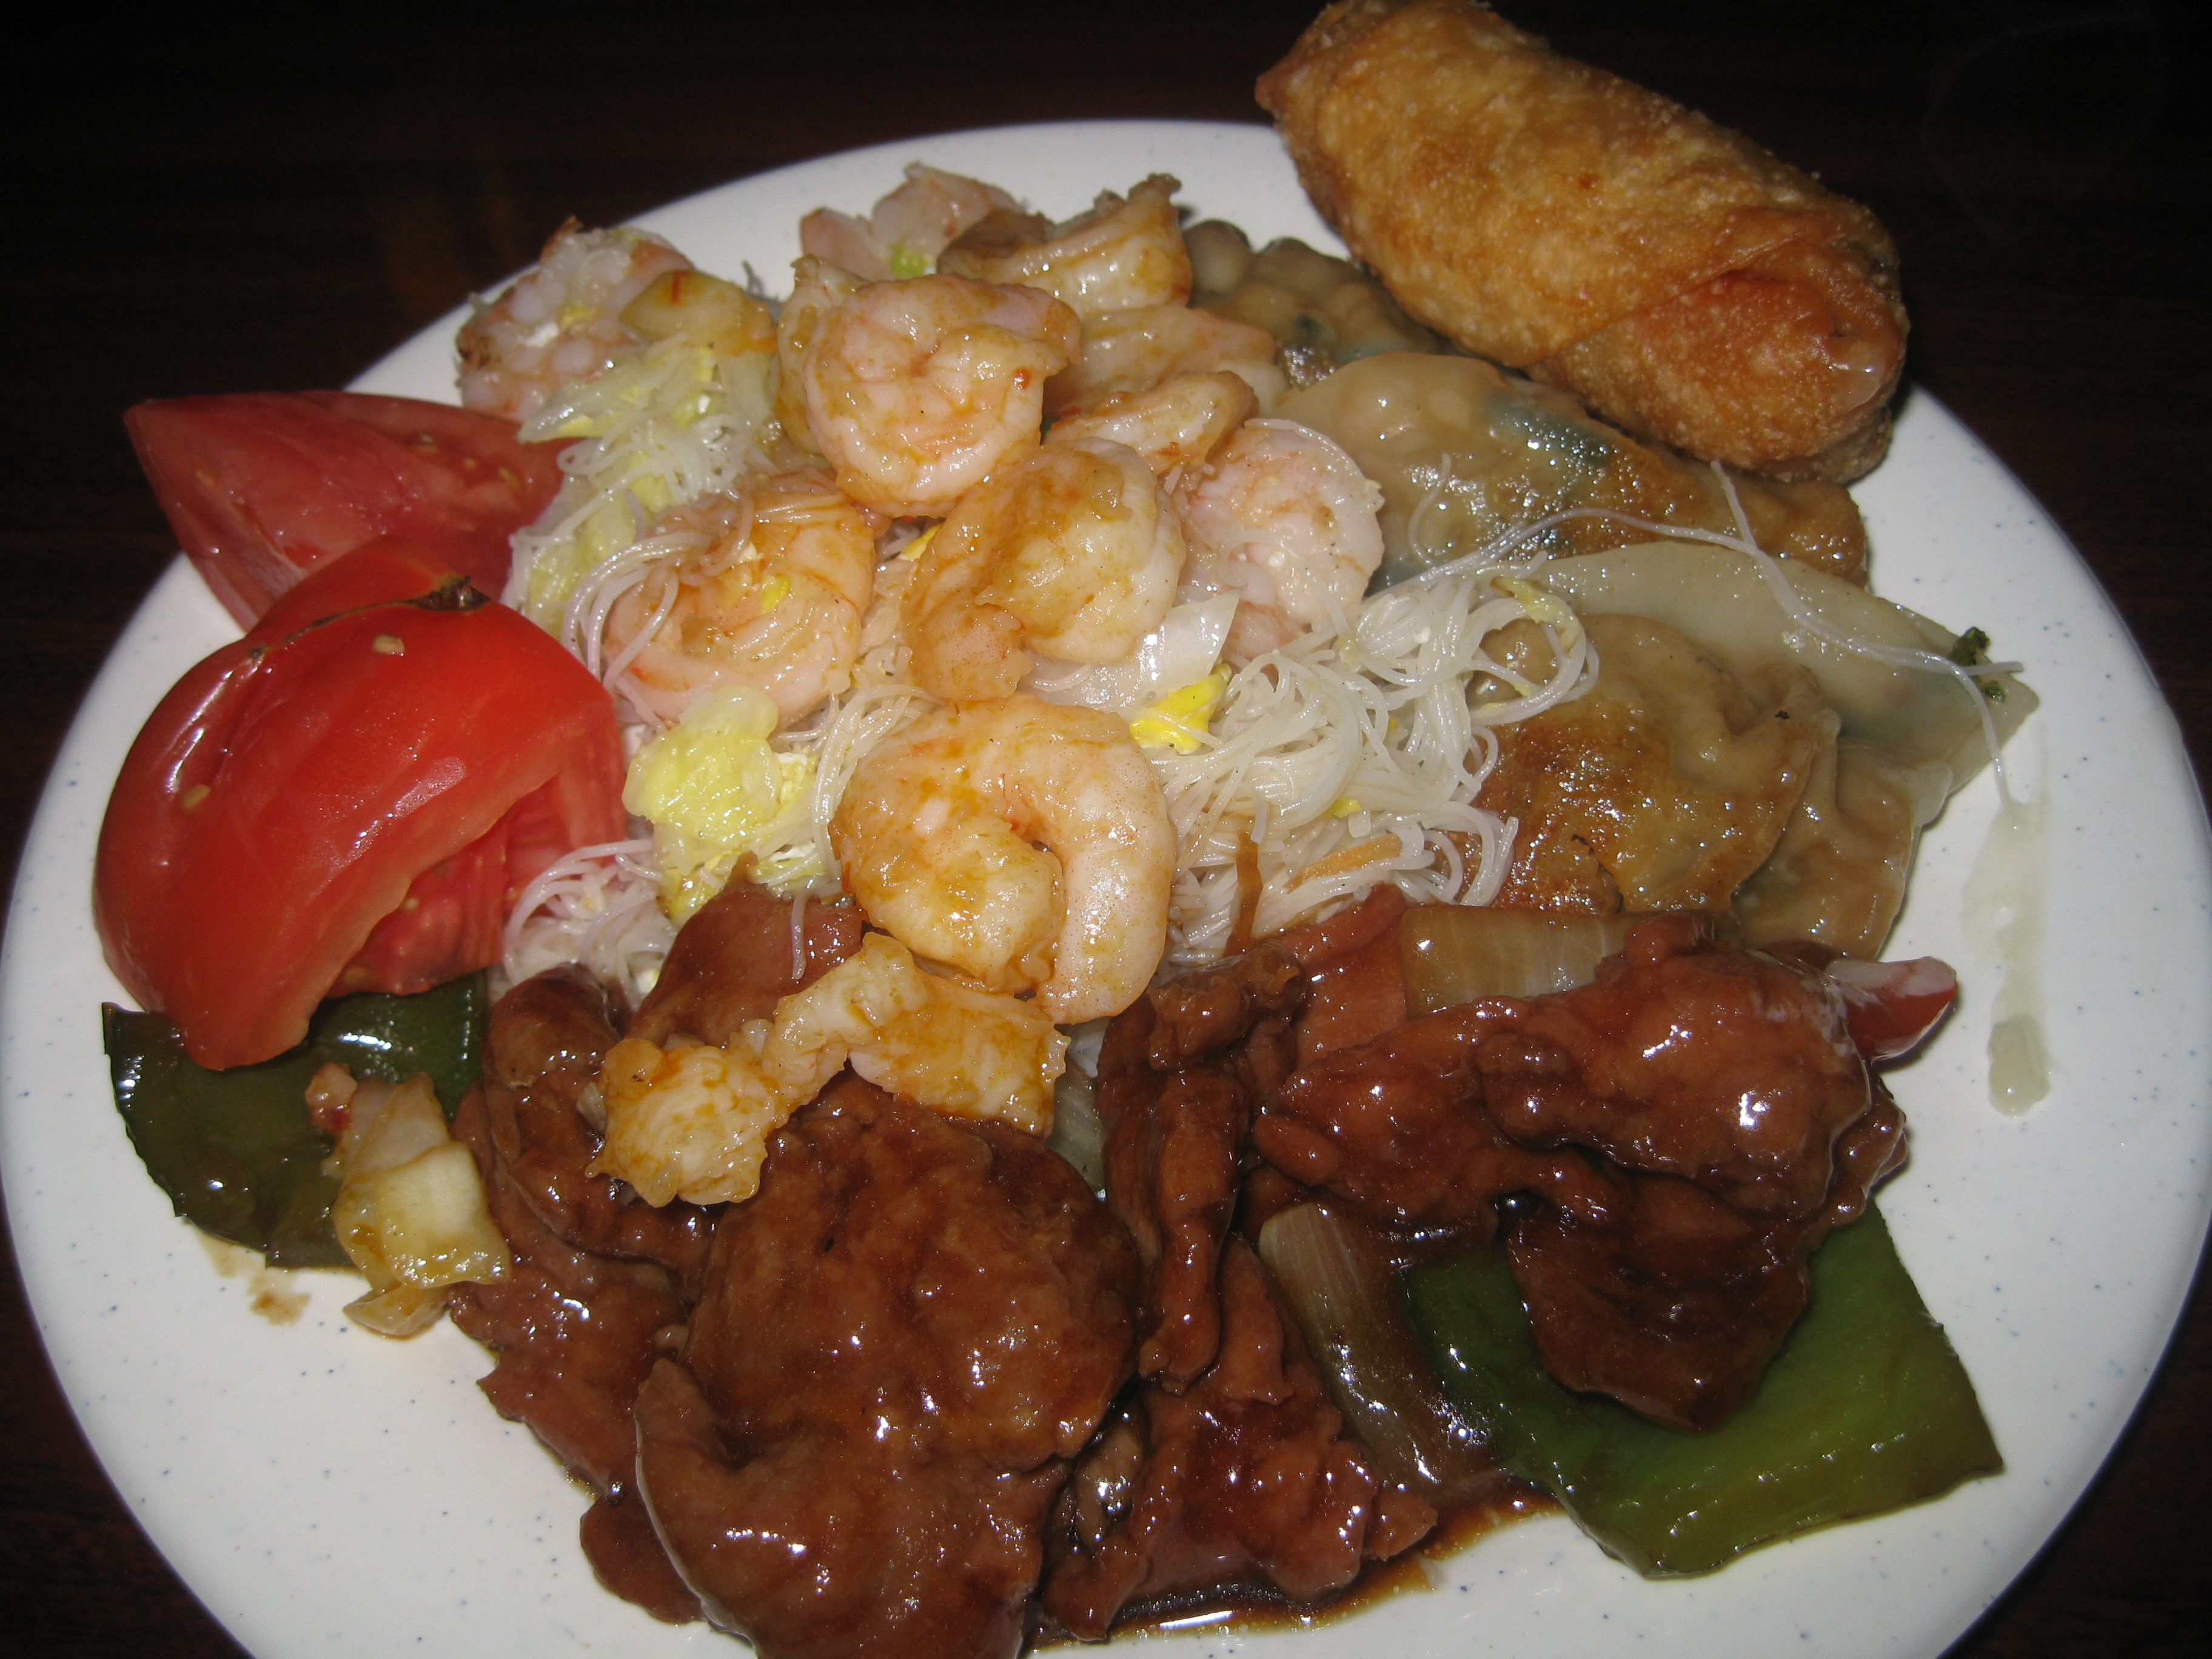 #PepperSteak with #red and #green #sliced #peppers, #sauteed #Shrimp, #meifunnoodles and an #eggroll - DrewryNewsNetwork.com